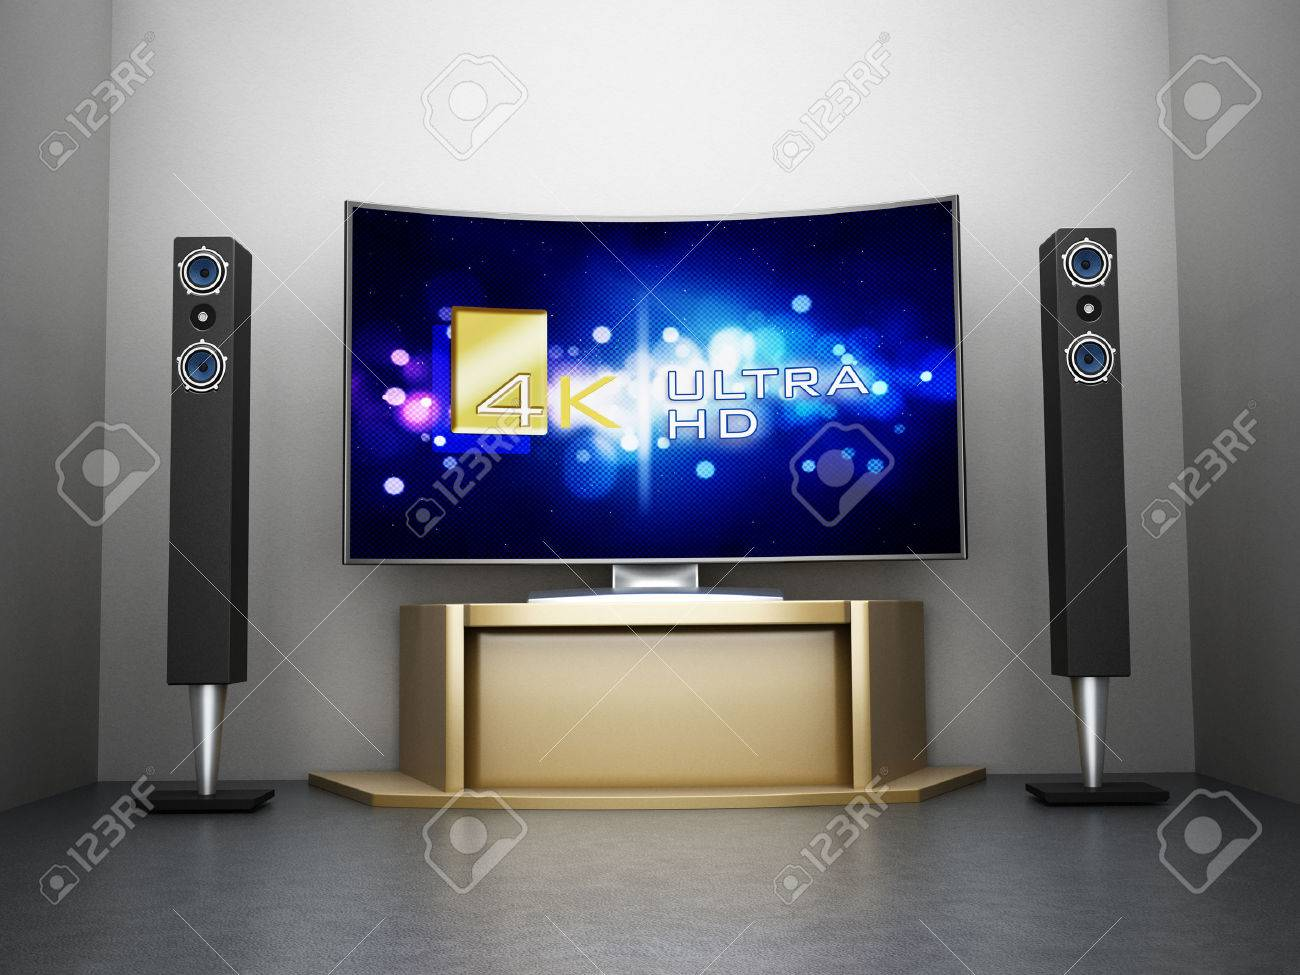 Ultra HD Curved TV with home theater system in the room Stock Photo - 43572533